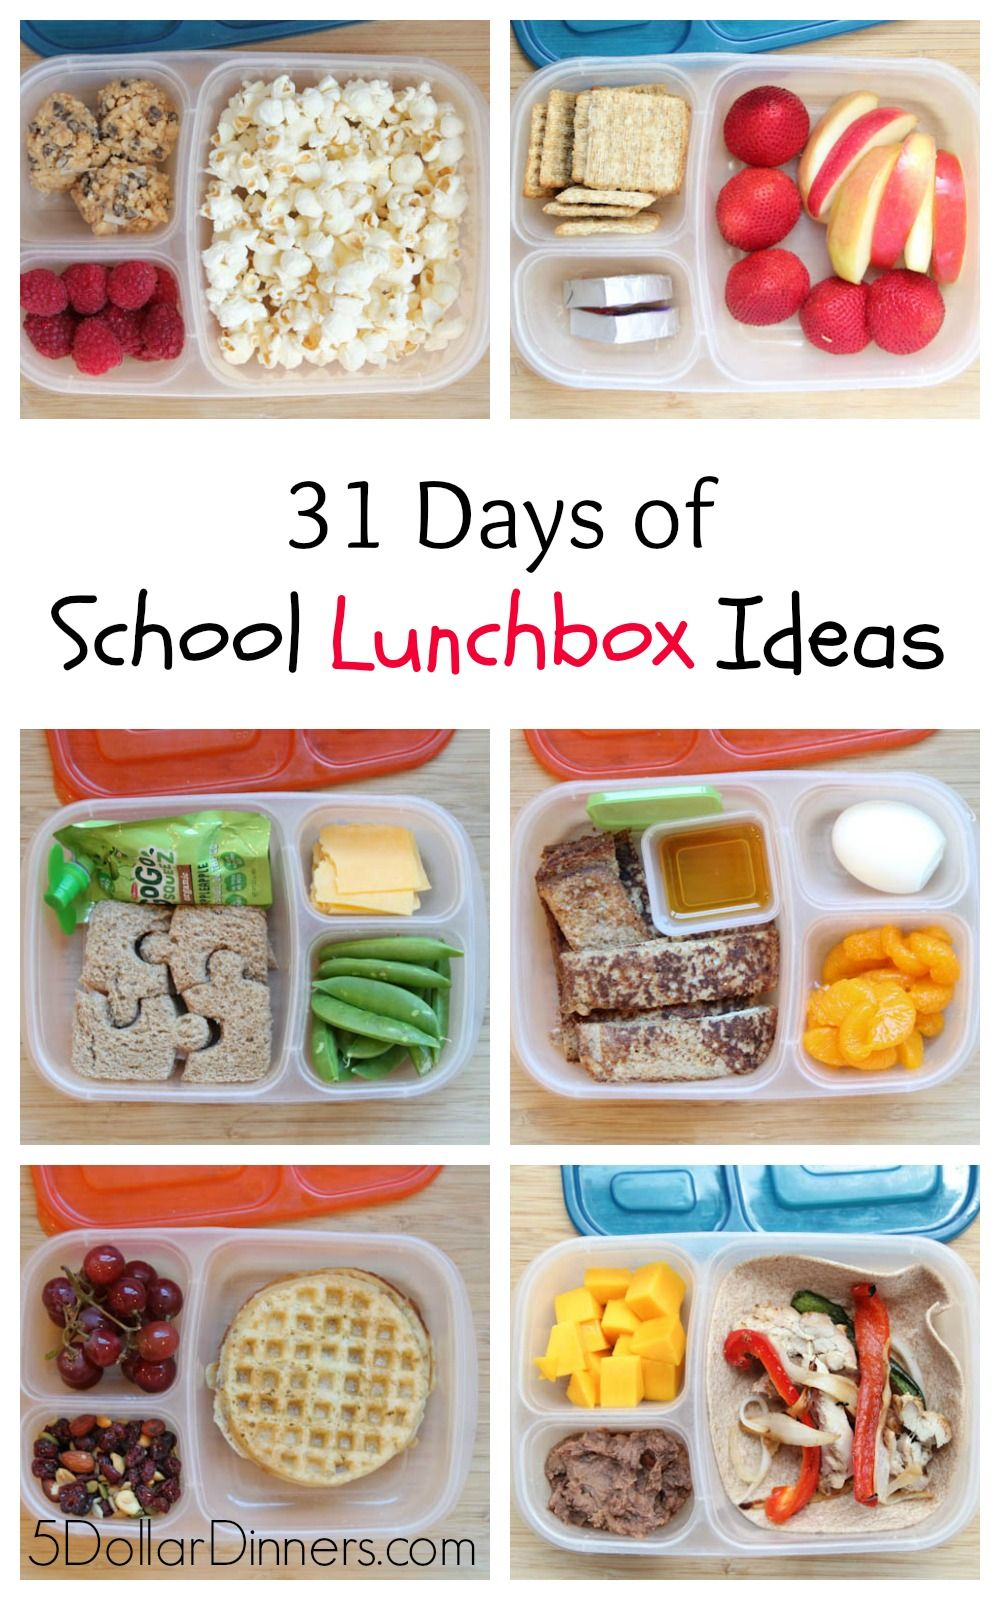 31 days of school lunchbox ideas in 2018 | kiddos and future kiddos